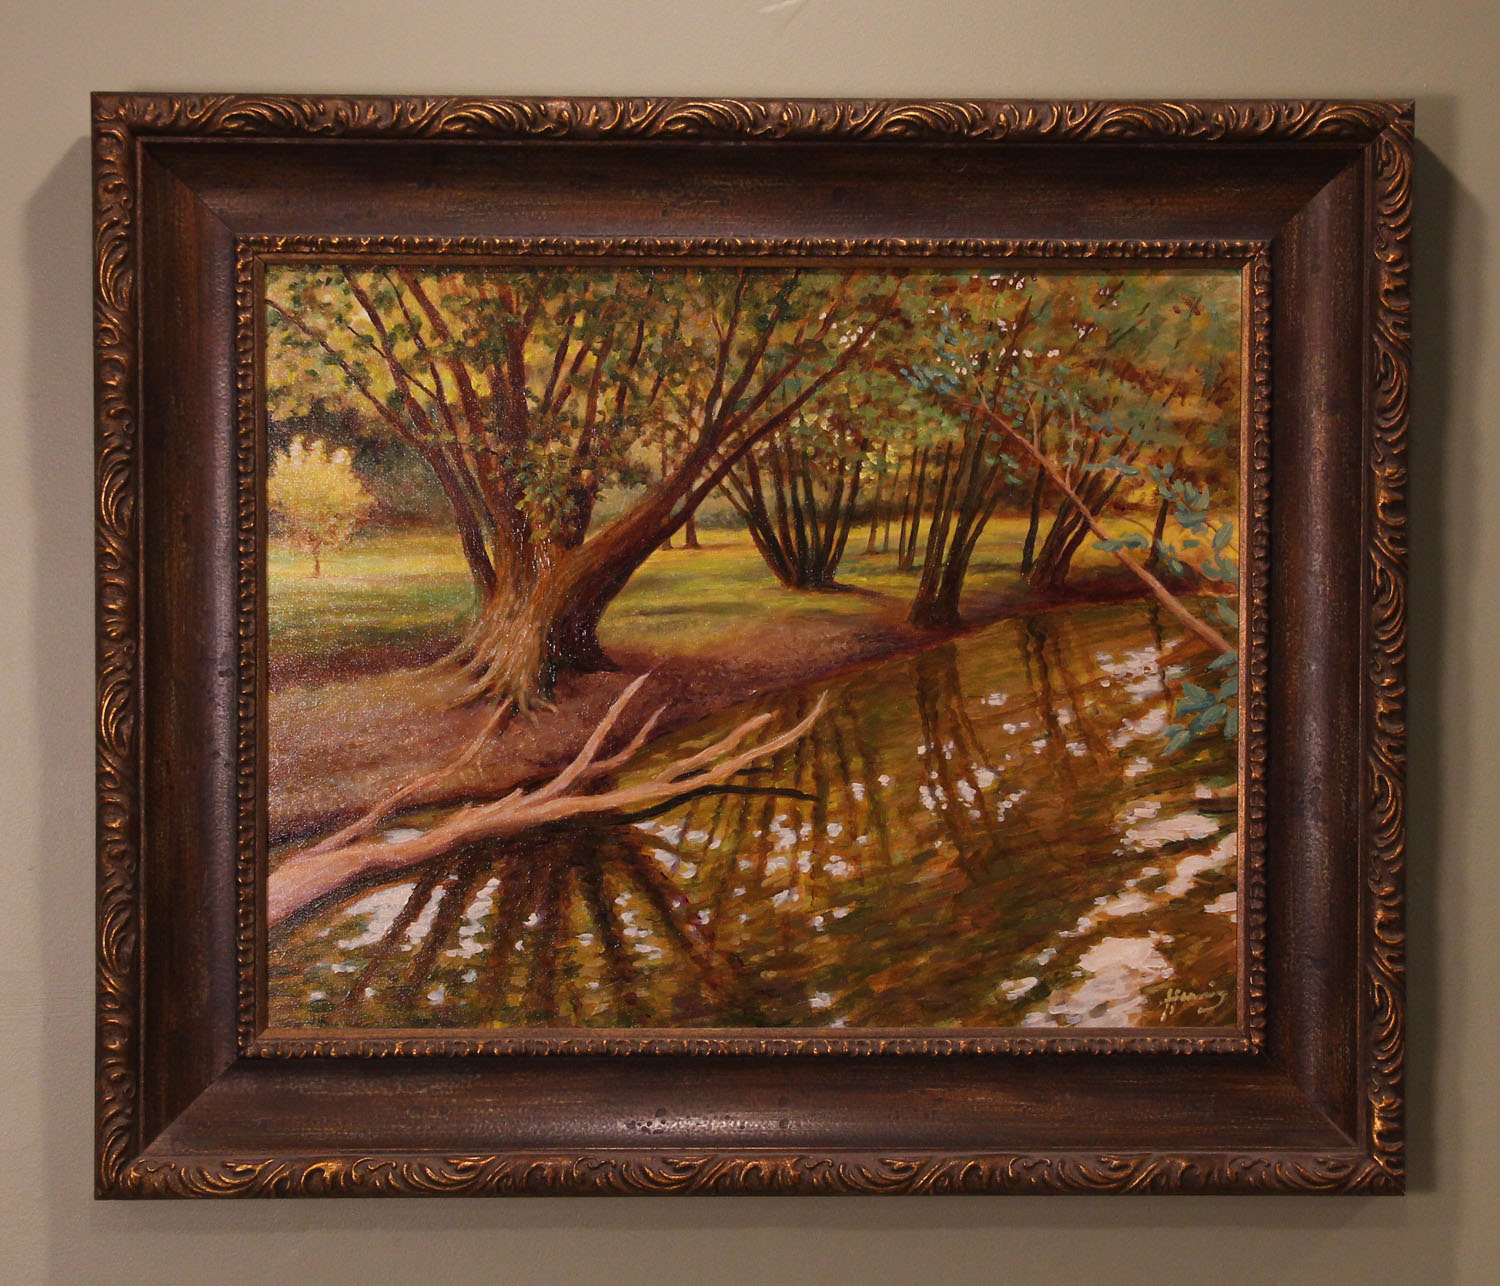 """Salt Creek About 10 years ago I taught a painting workshop to an art club in Clinton, Illinois. This was a plein aire painting I created after hours, of a stream near my host's country home. Canvas: 28"""" x 22""""  